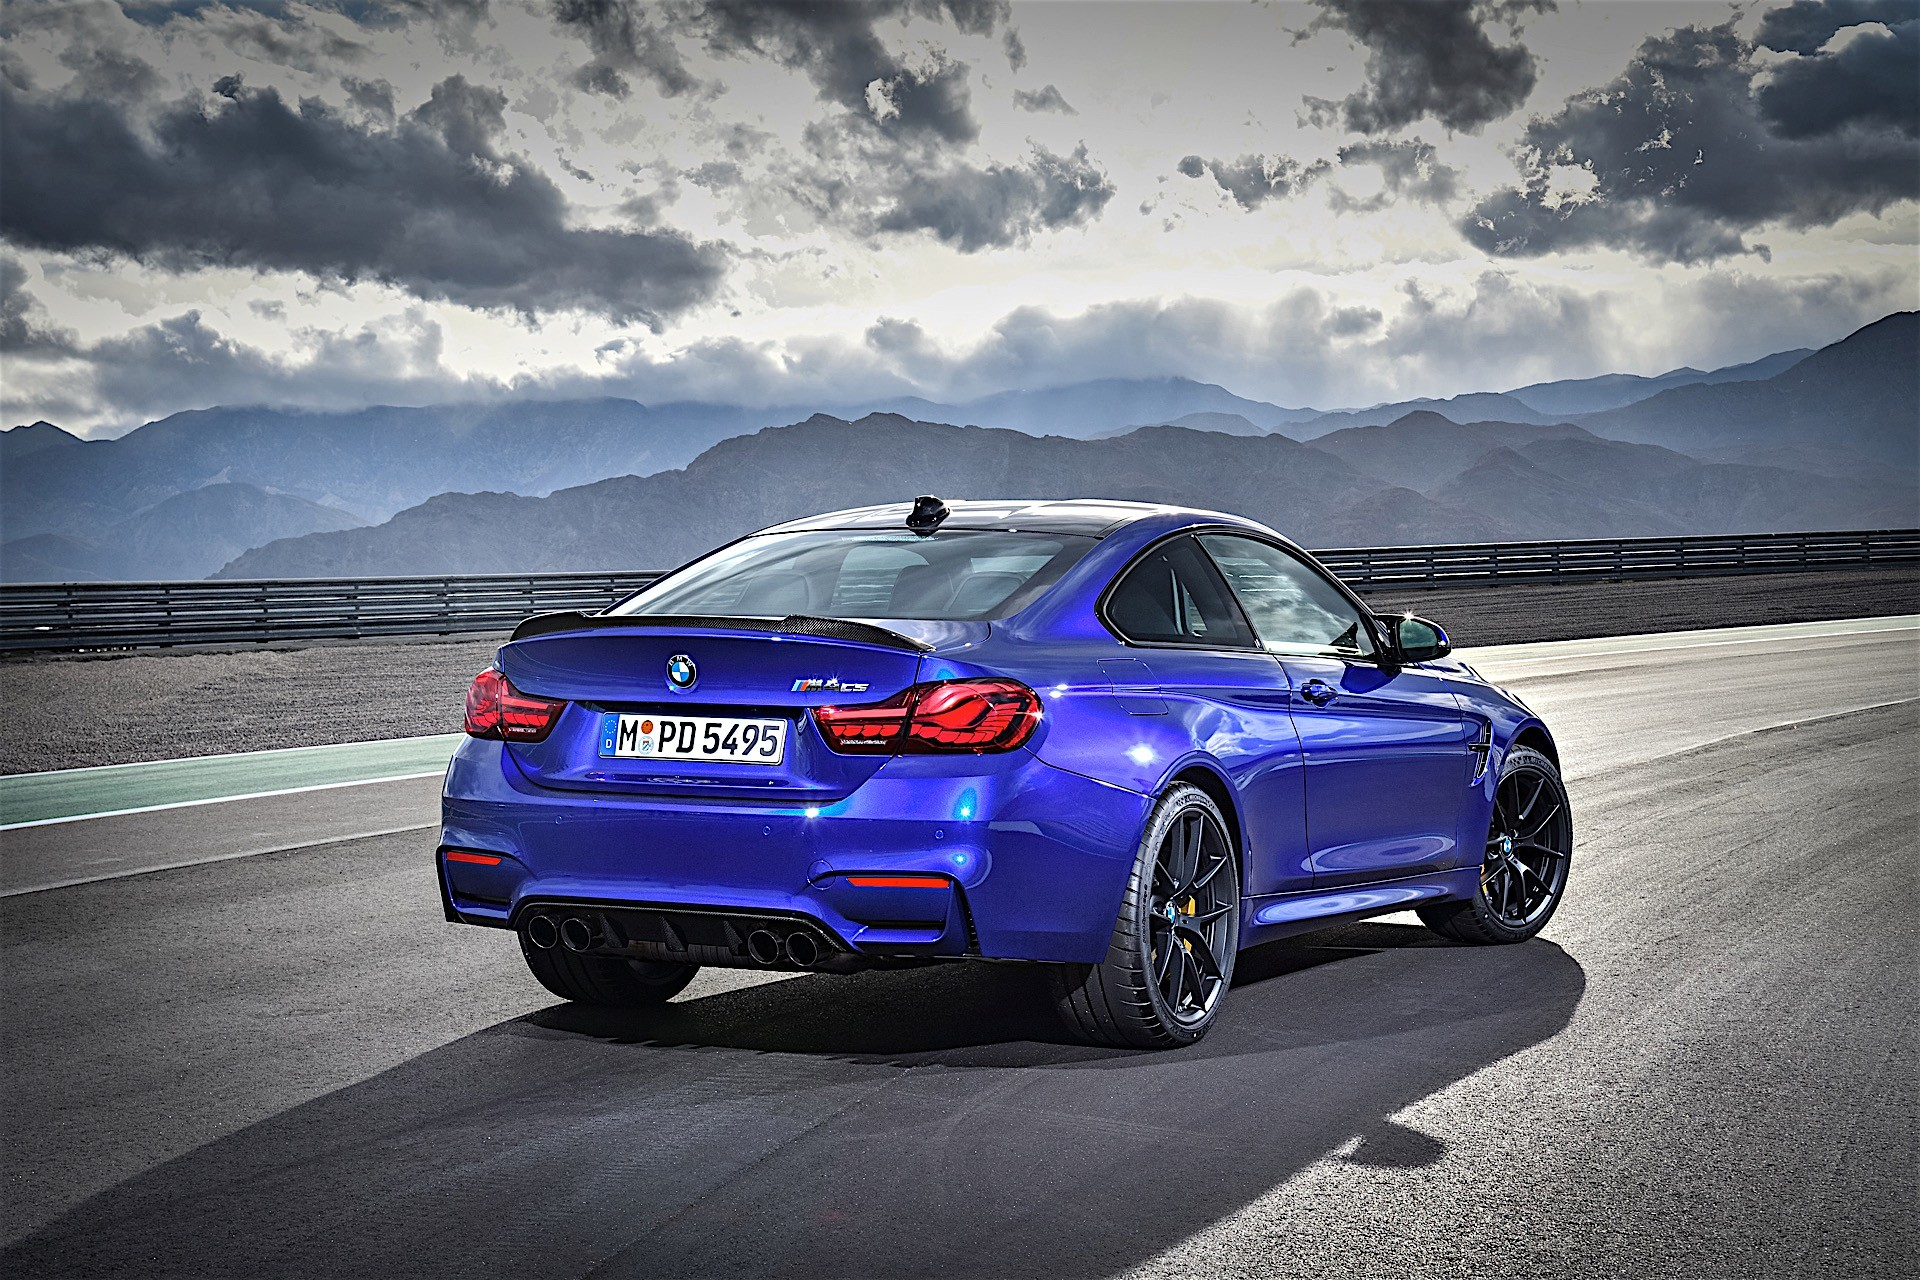 Bmw M4 Cs Revealed With 460 Hp And A Nurburgring Time Of 7 38 Autoevolution